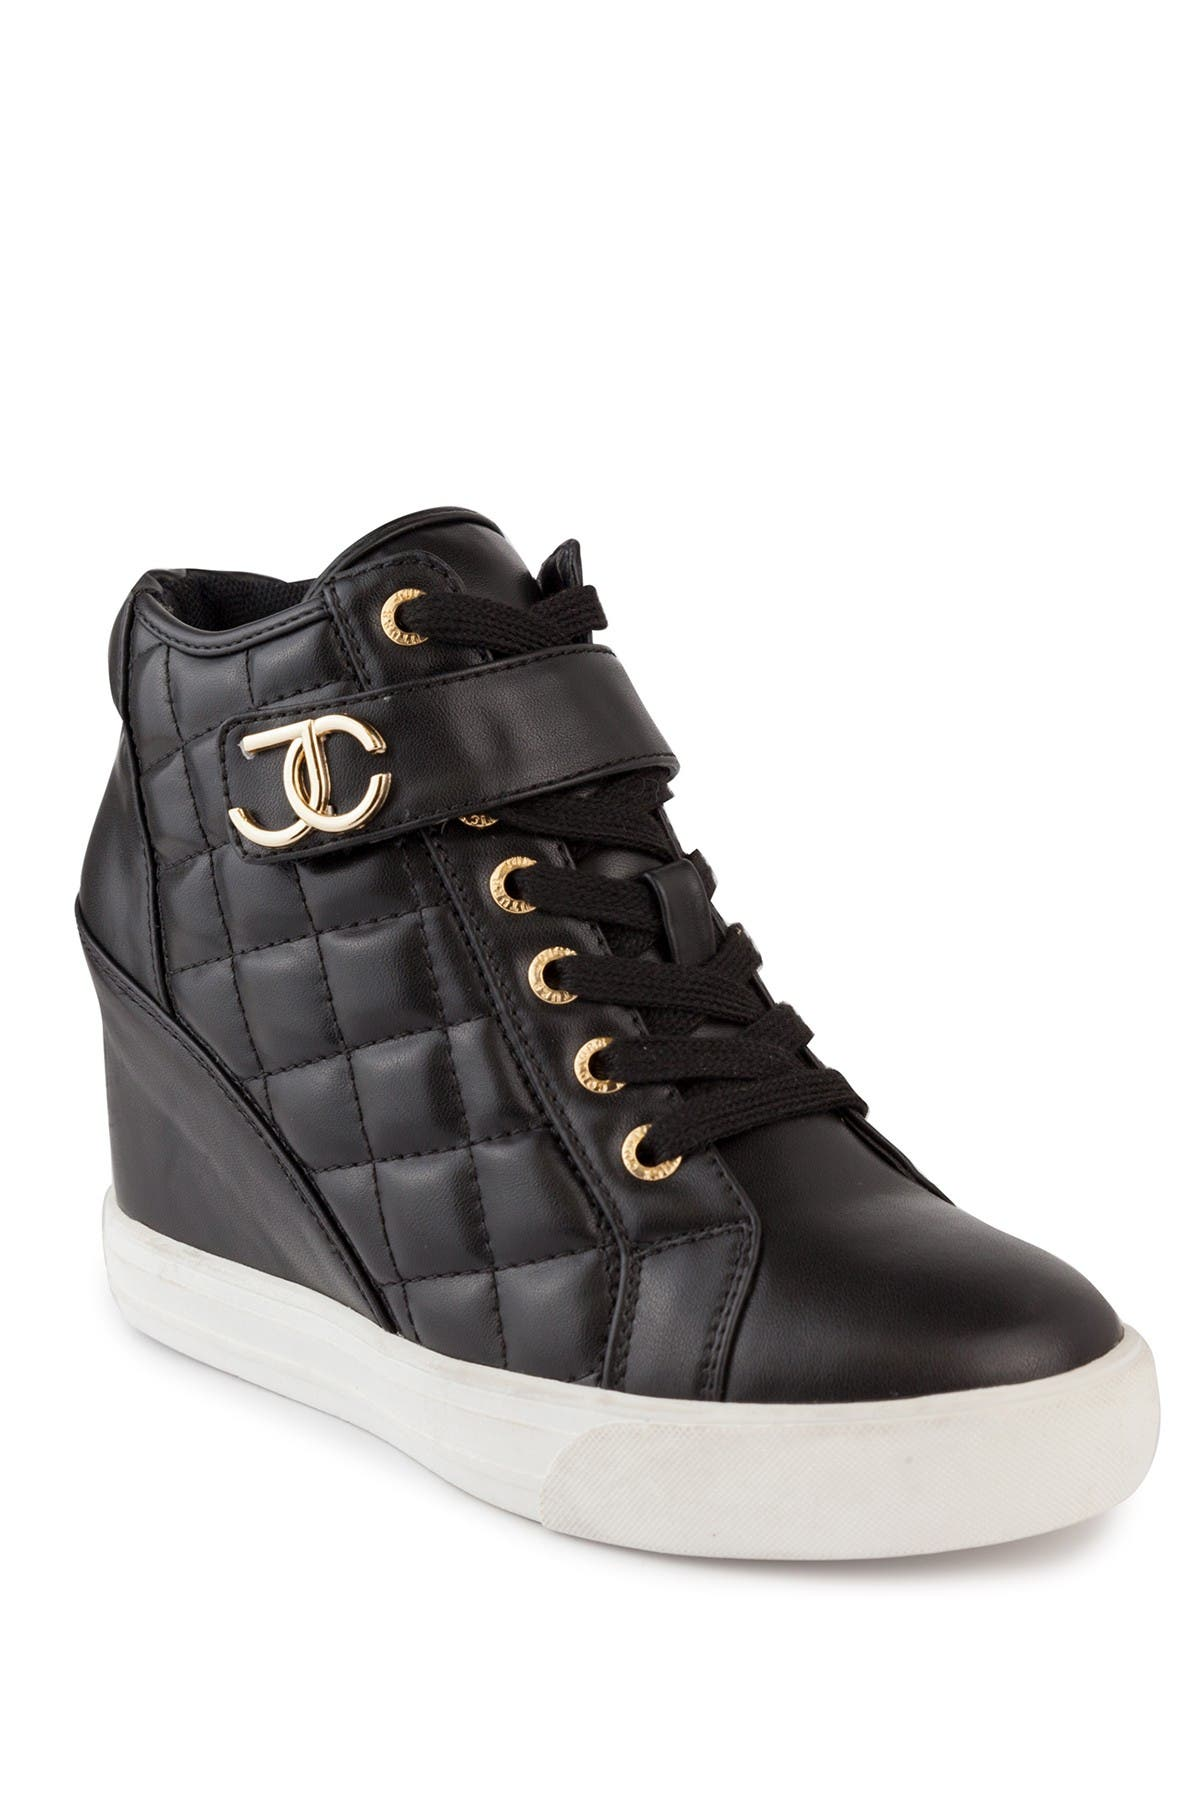 Image of Juicy Couture Journey Wedge Sneaker